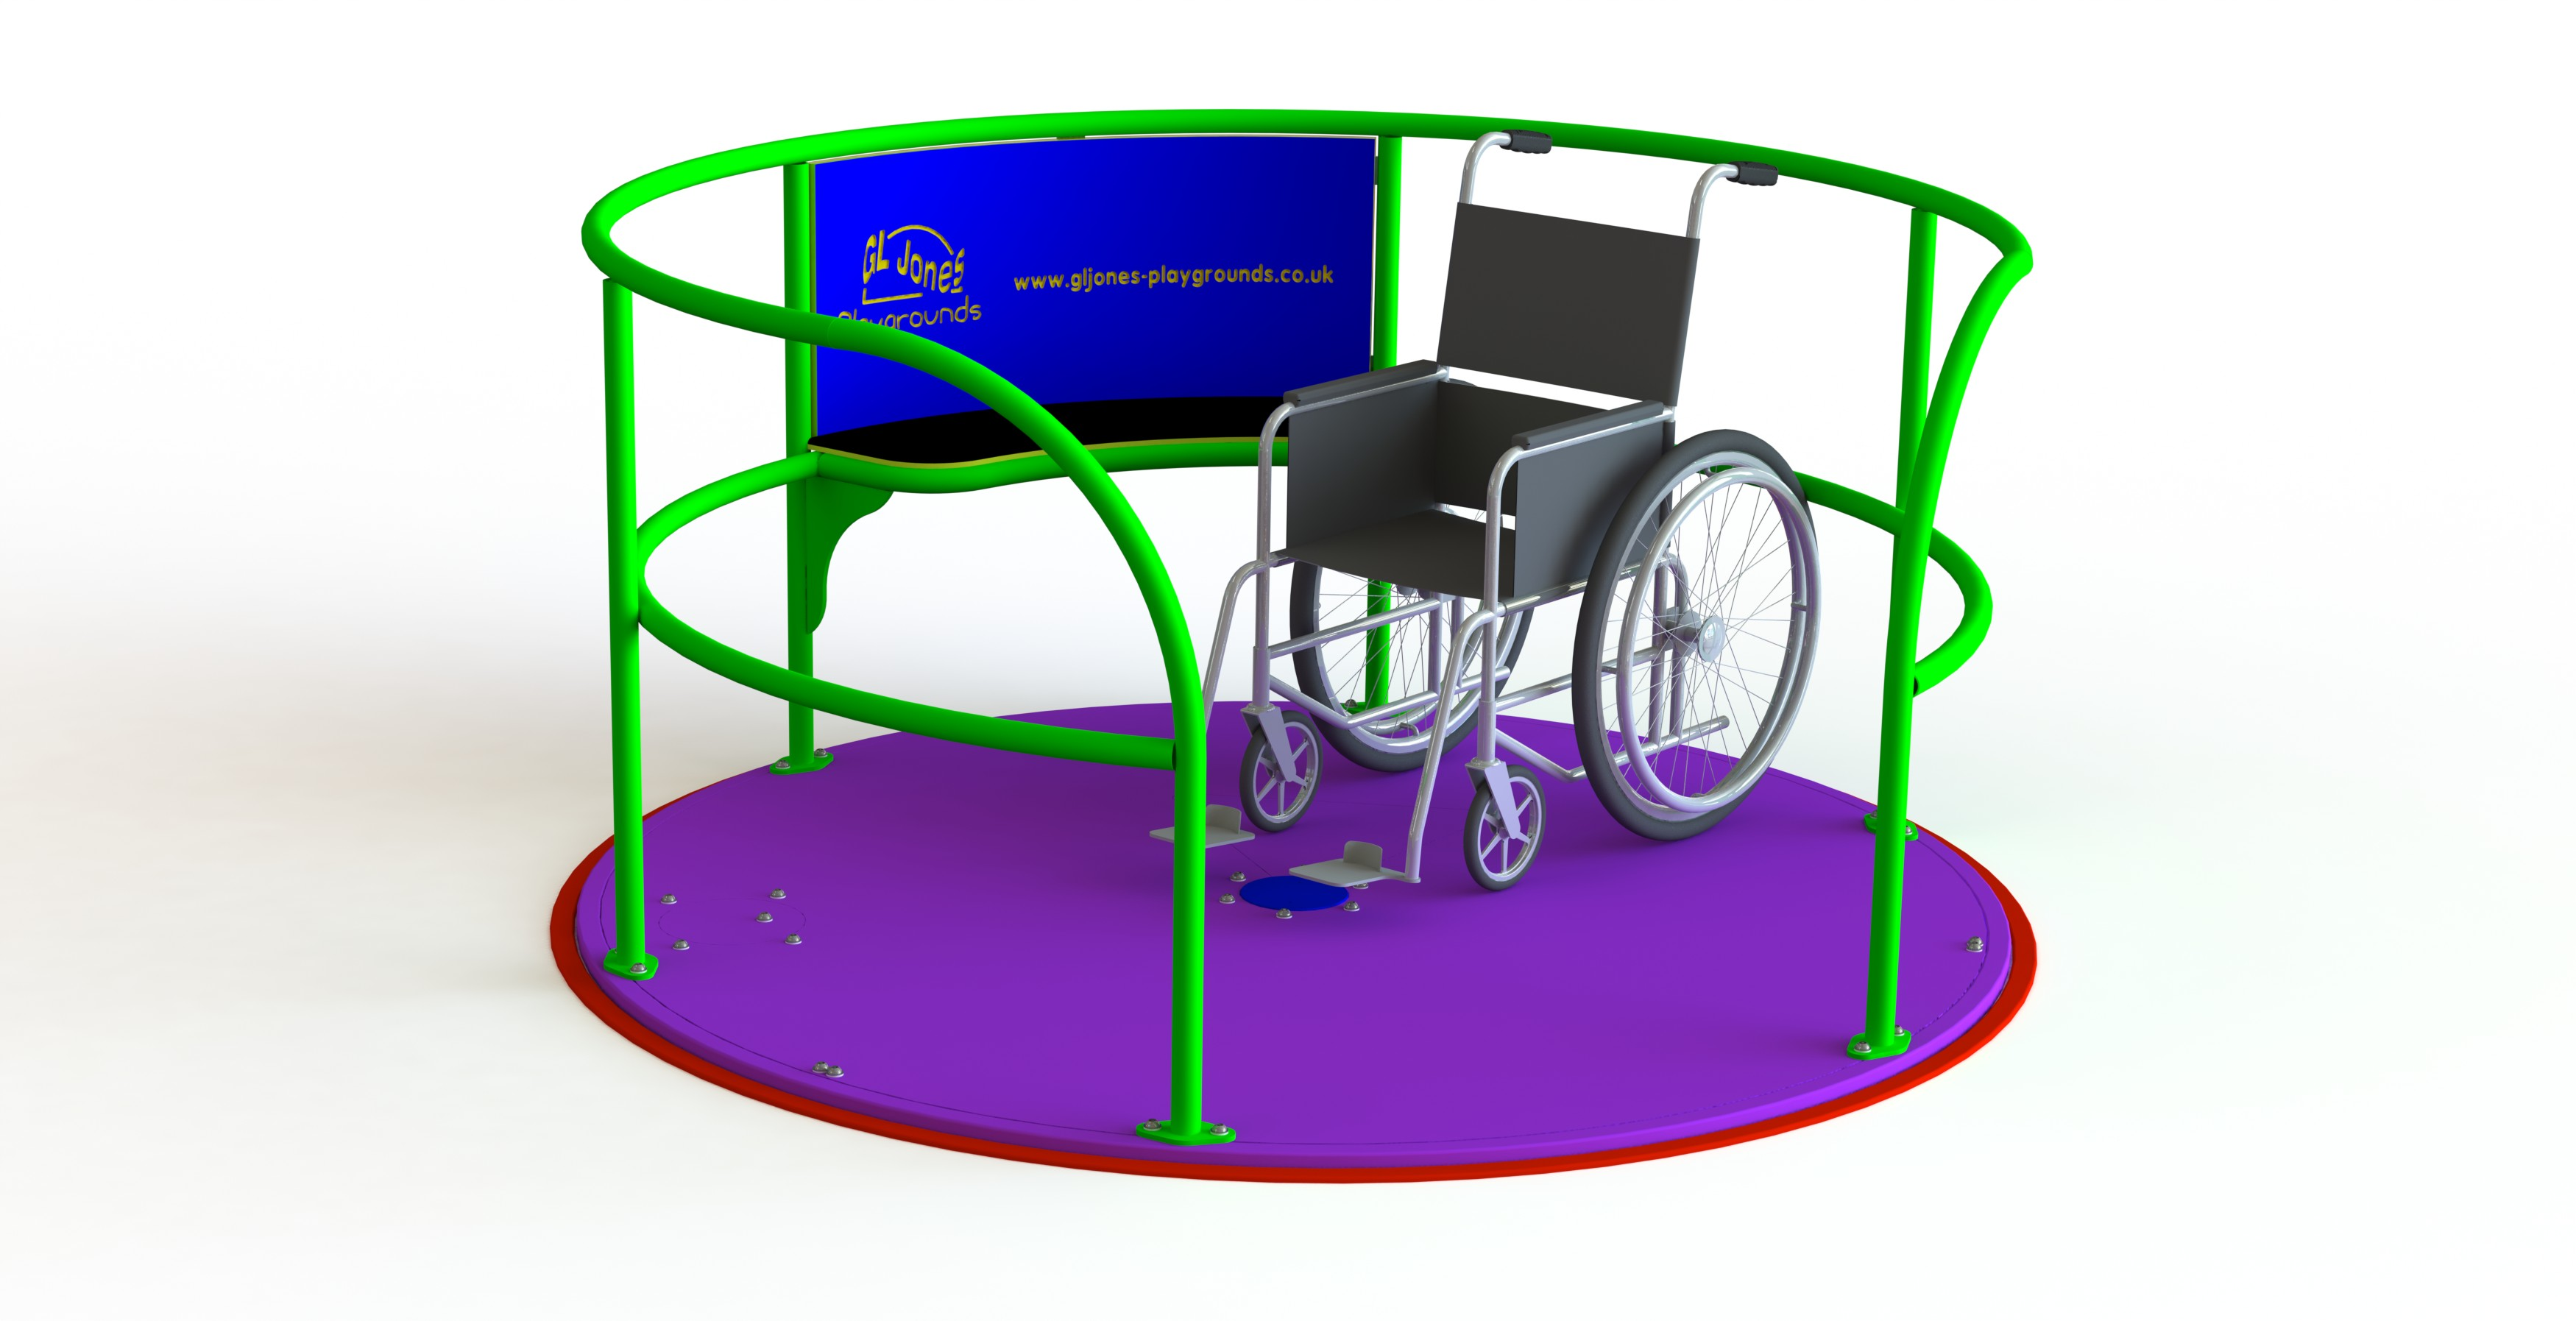 GL Jones Playgrounds - 1.8m diameter Wheelchair Ability SpaceDisk